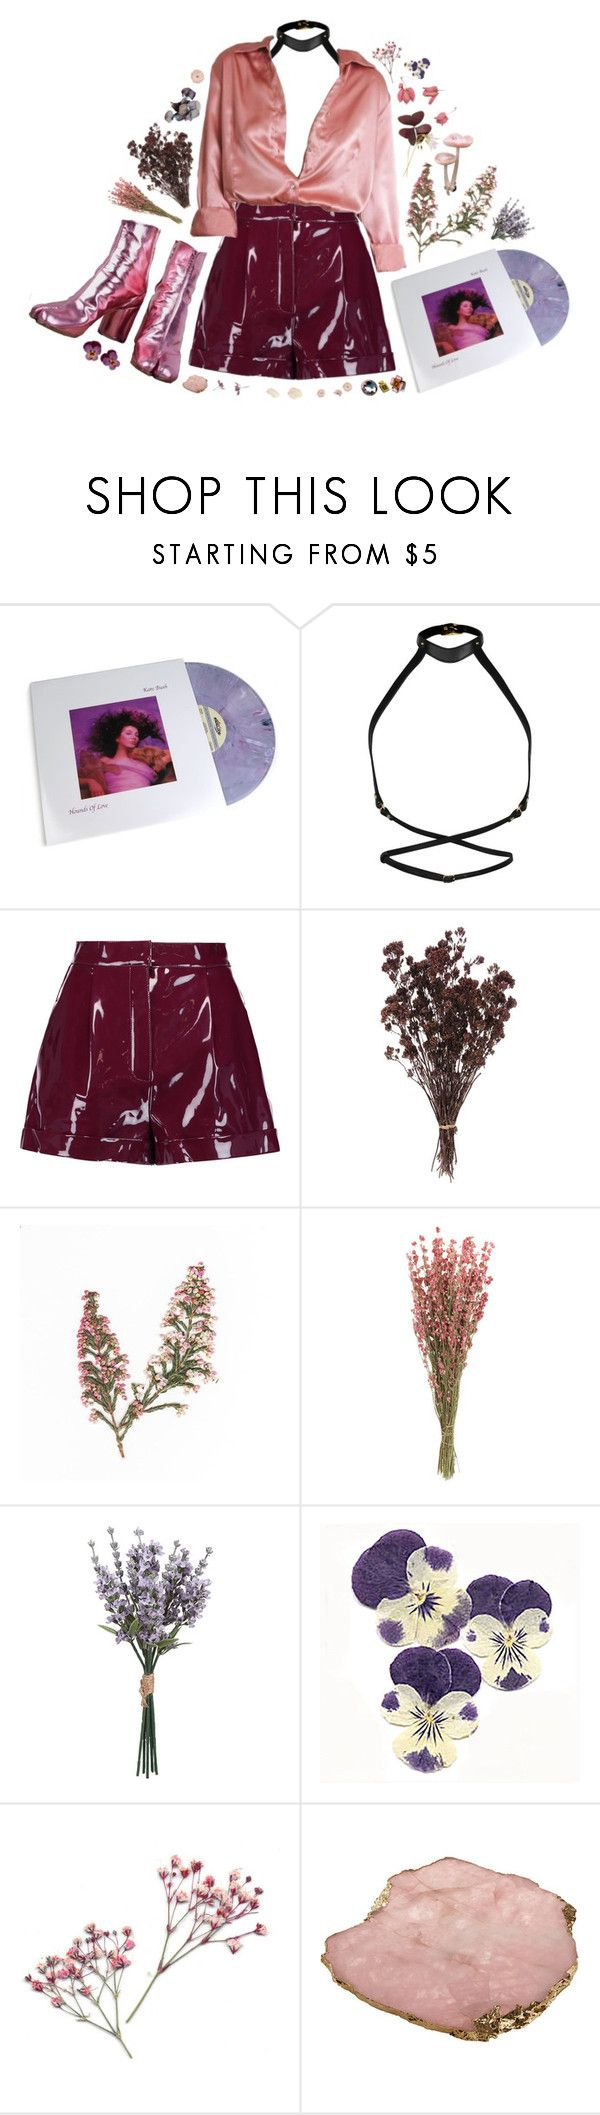 """""""HOUND OF LOVE"""" by thinvein ❤ liked on Polyvore featuring Zana Bayne, Valentino and Anna New York"""